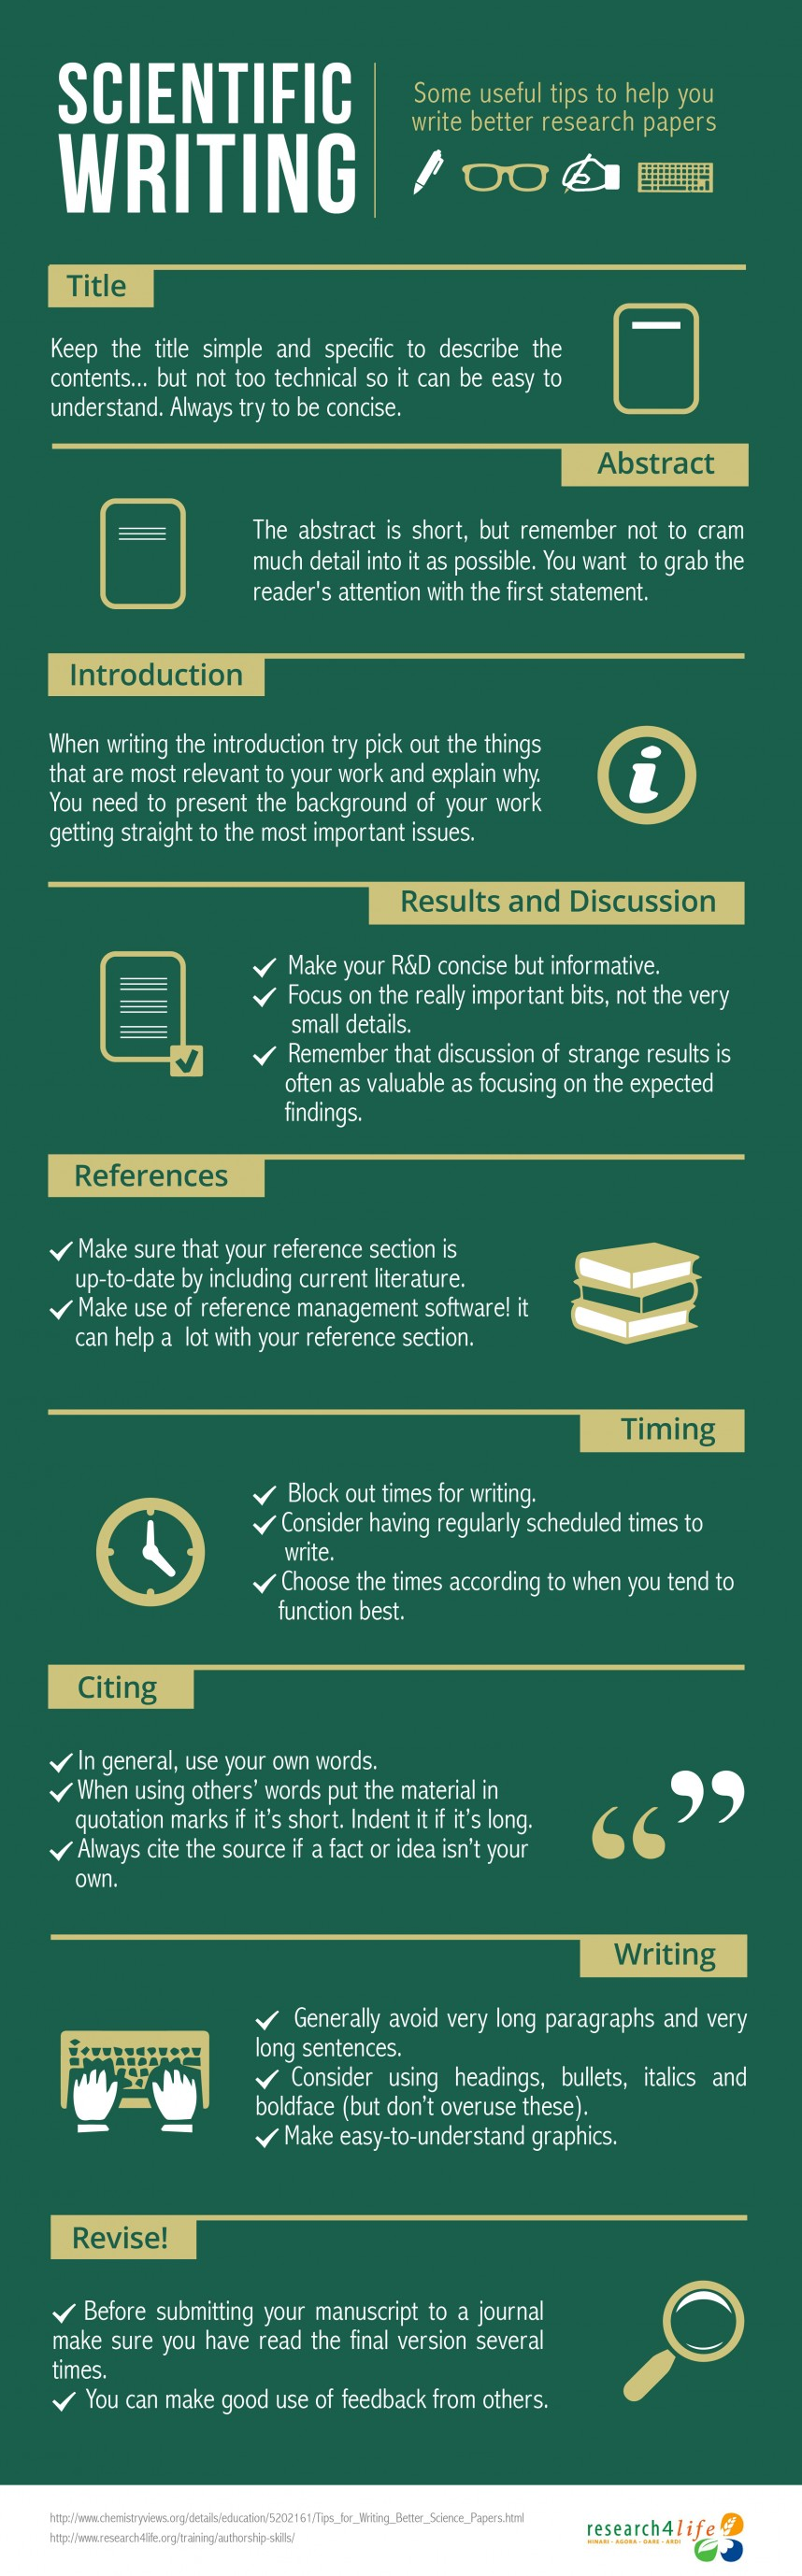 001 Research Paper Scientific Writing Tips For Awful A Quickly In College